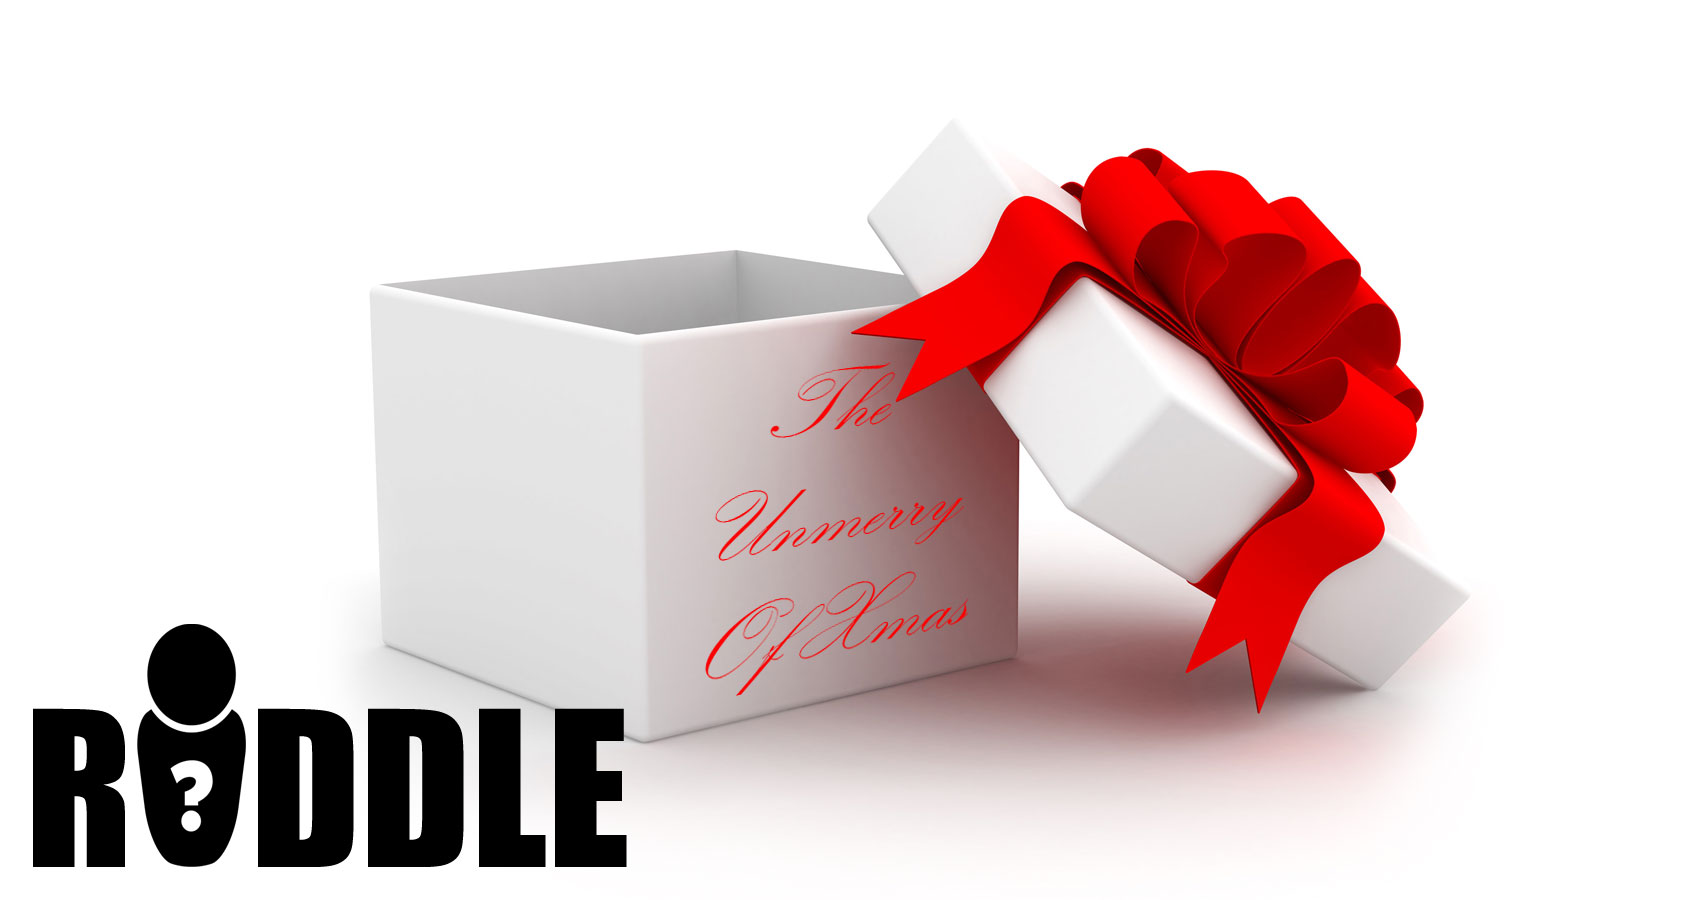 The Unmerry Of Xmas riddle written by Liam Ward at Spillwords.com